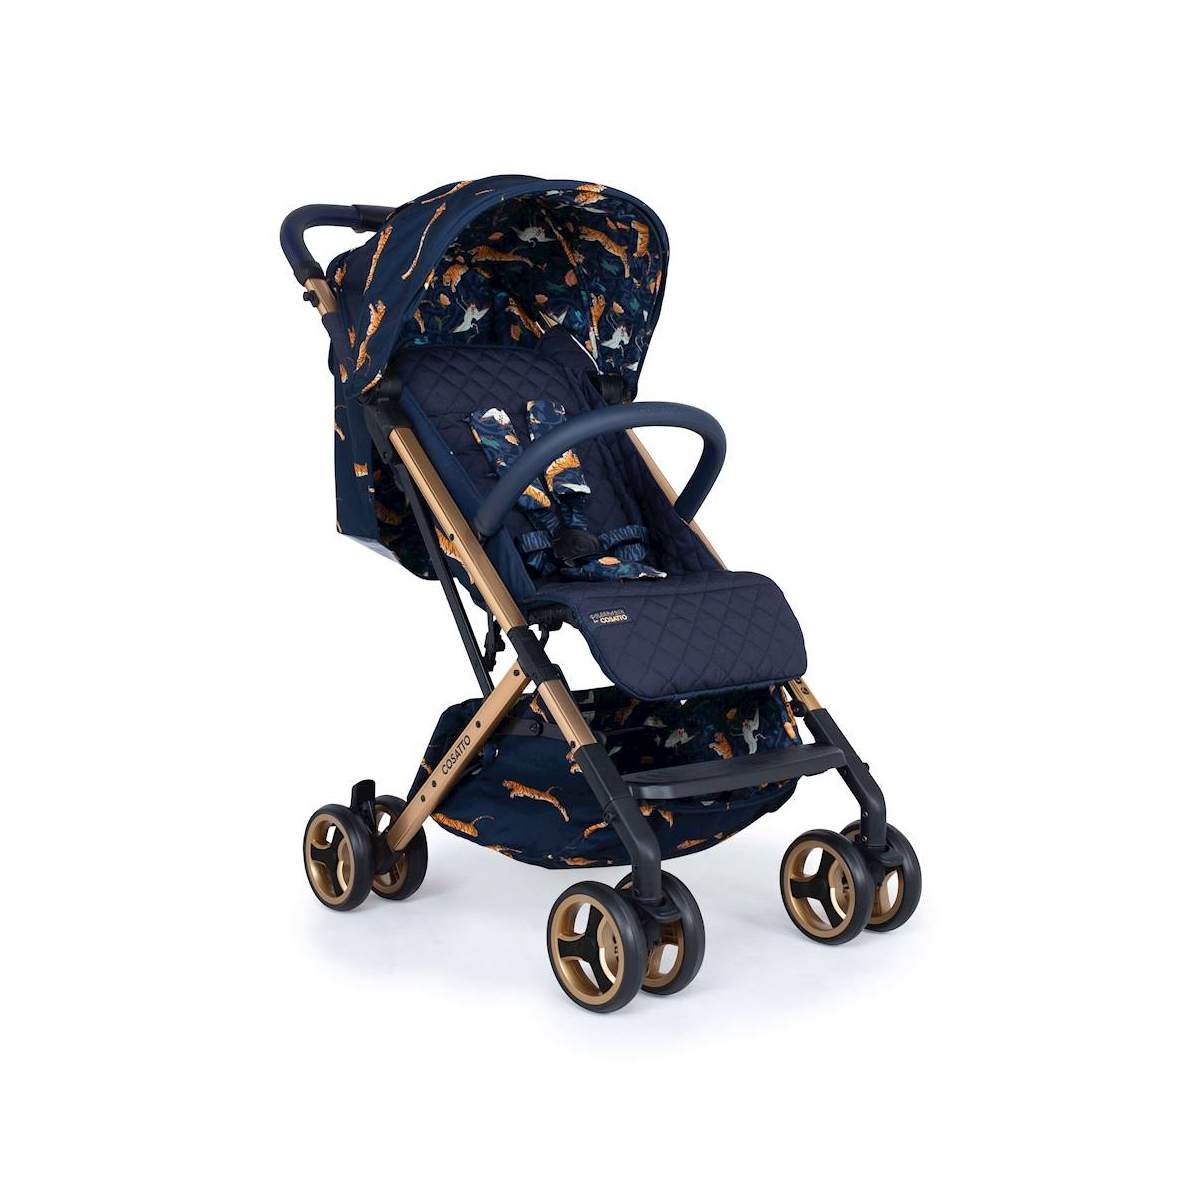 Cosatto Woosh XL Pushchair - On the Prowl